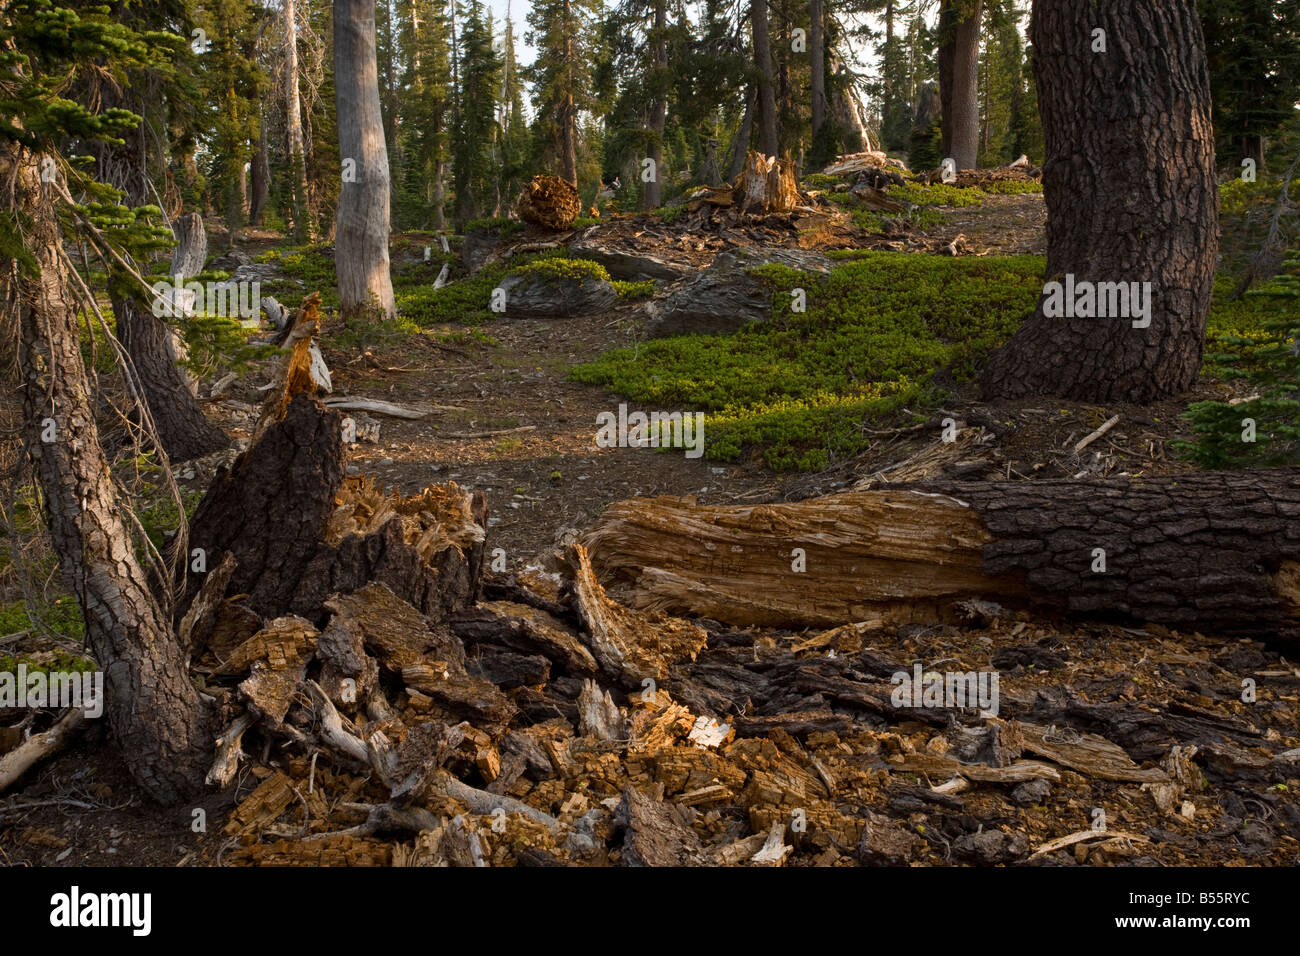 Ancient red fir (Abies magnifica) and pine forest, with abundant fallen logs and dead wood, on Mount Lassen, California. - Stock Image